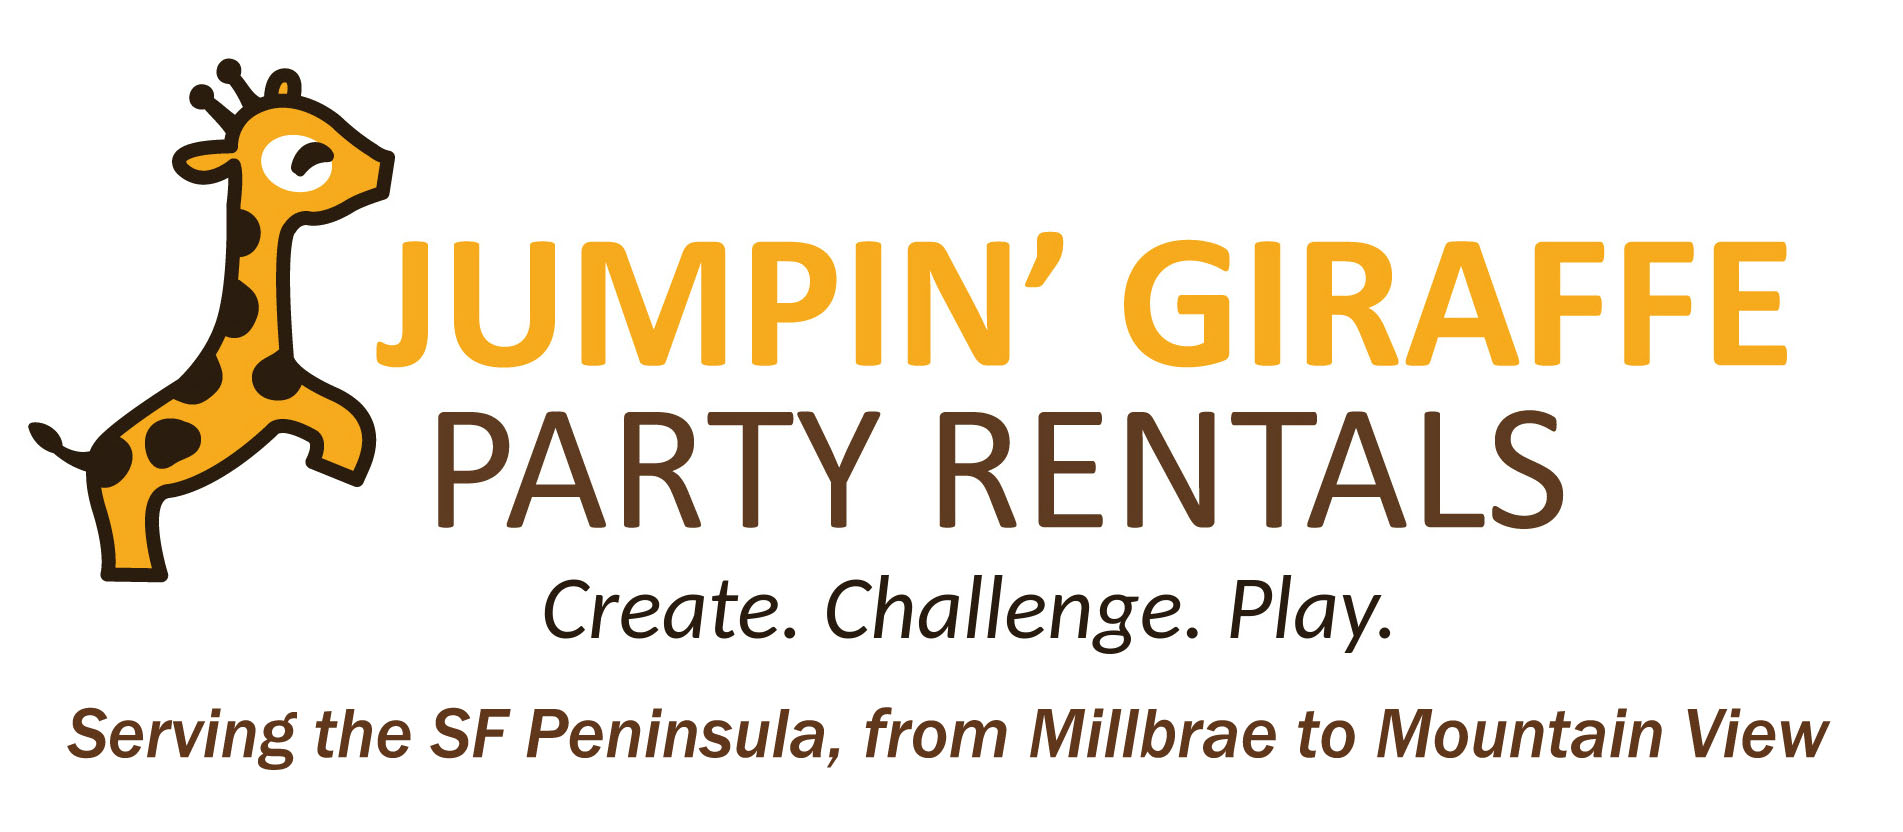 Jumpin' Giraffe Party Rentals